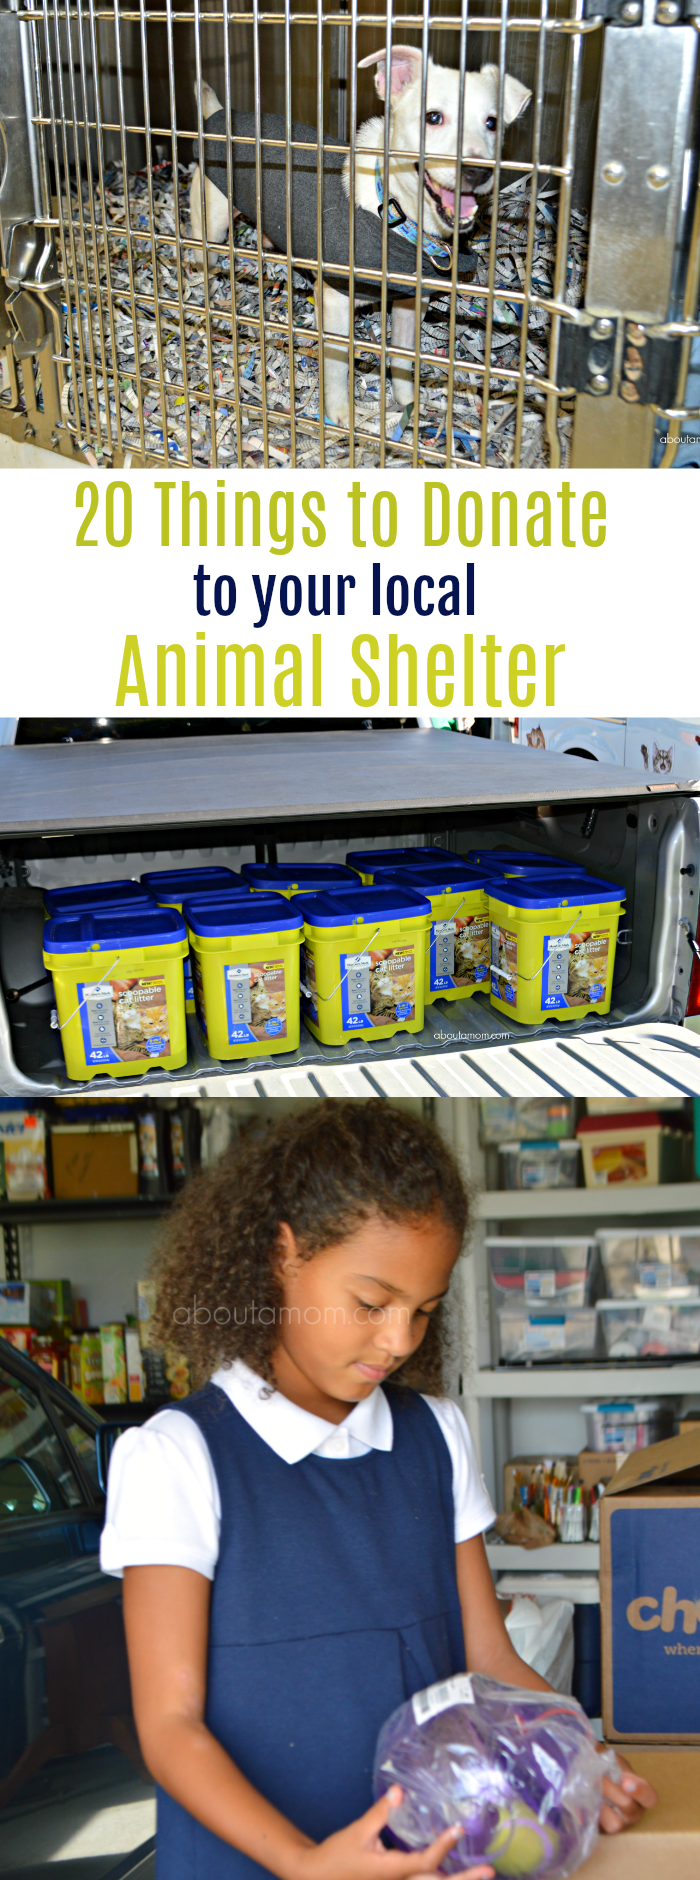 Animal shelters and rescues rely heavily on donations. Here's a list of 20 simple things to donate to your local animal shelter.